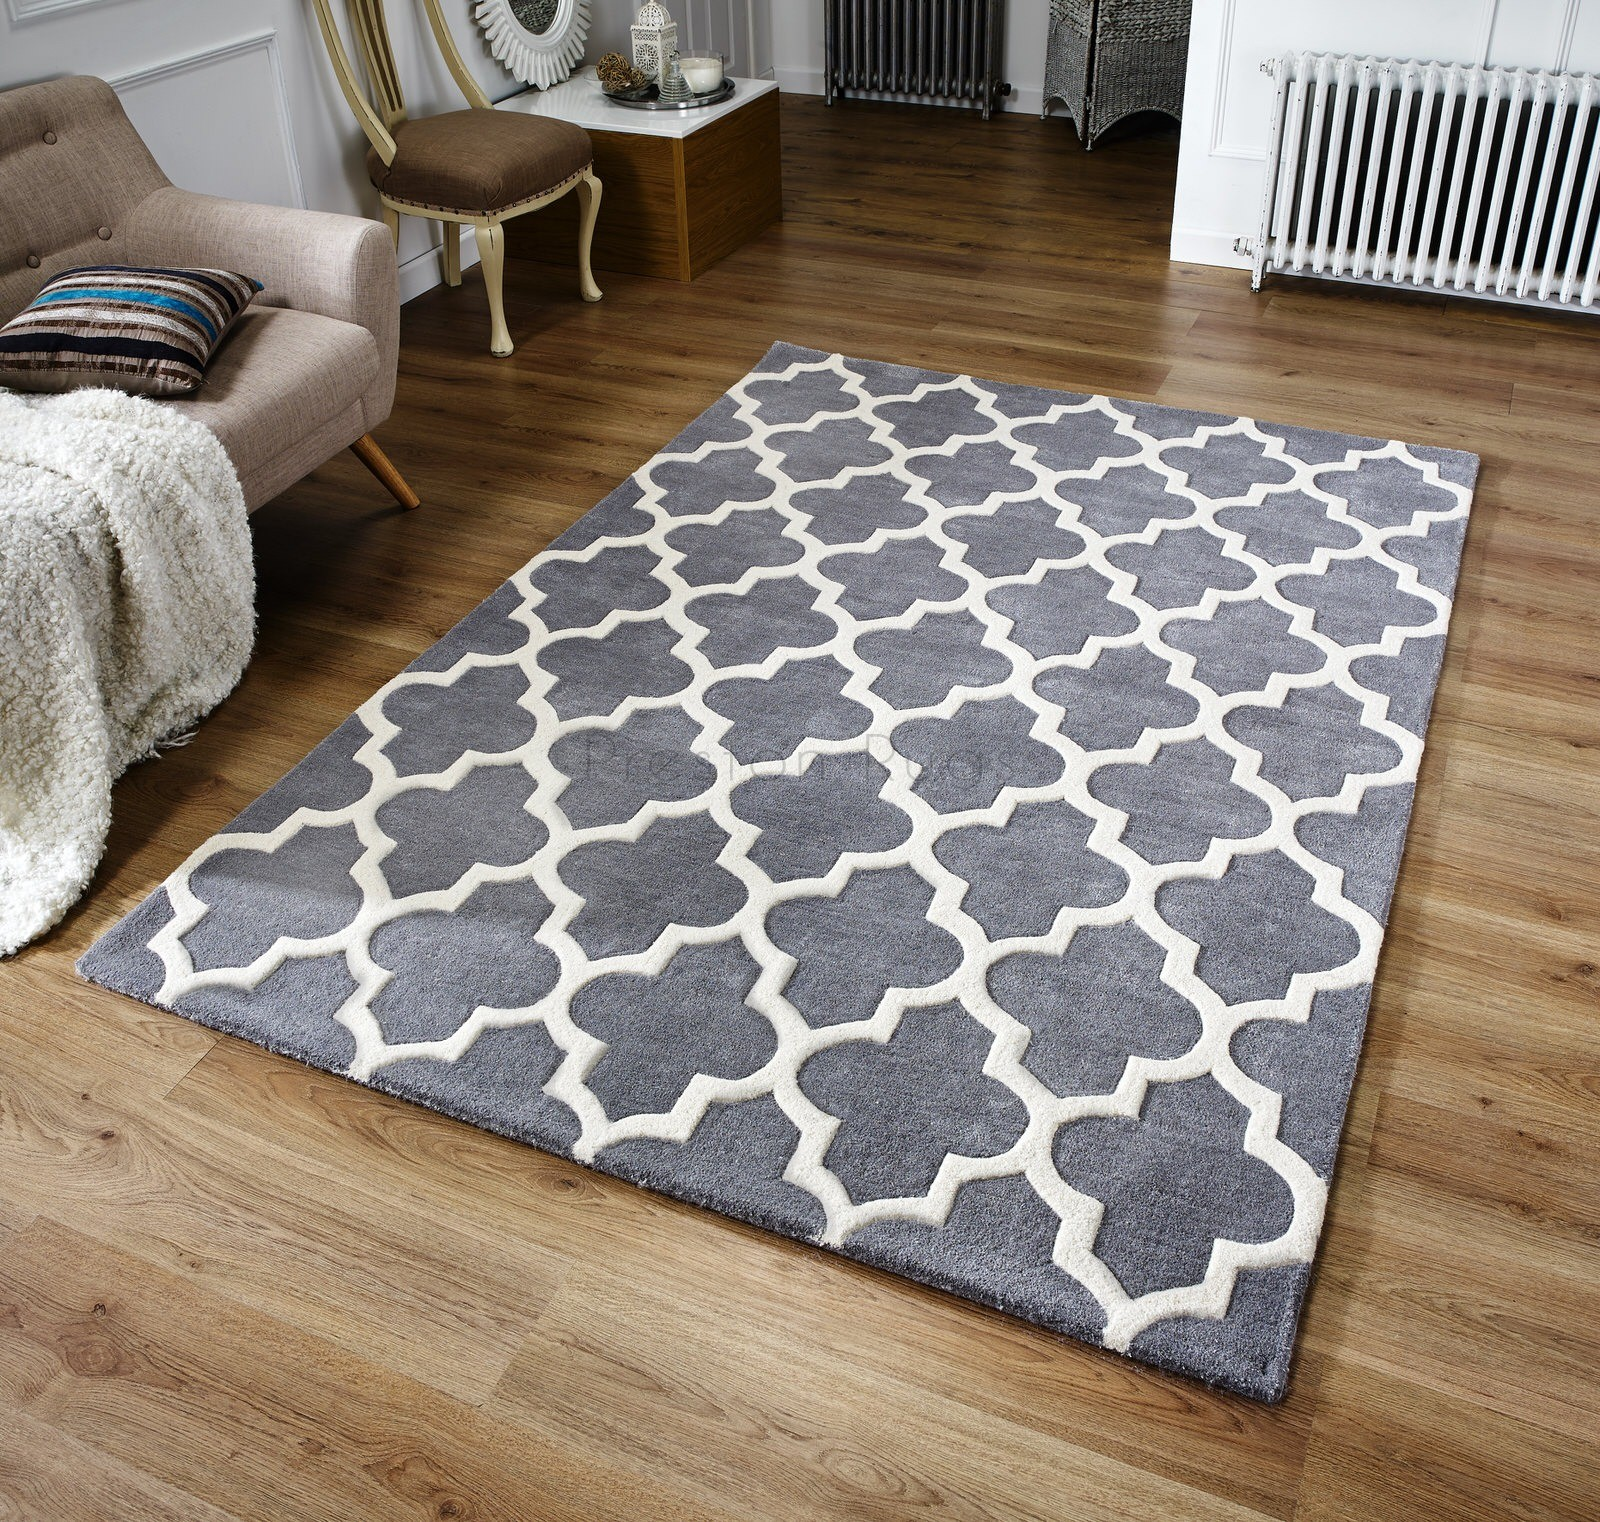 Arabesque Moroccan Pattern Wool Rug Grey